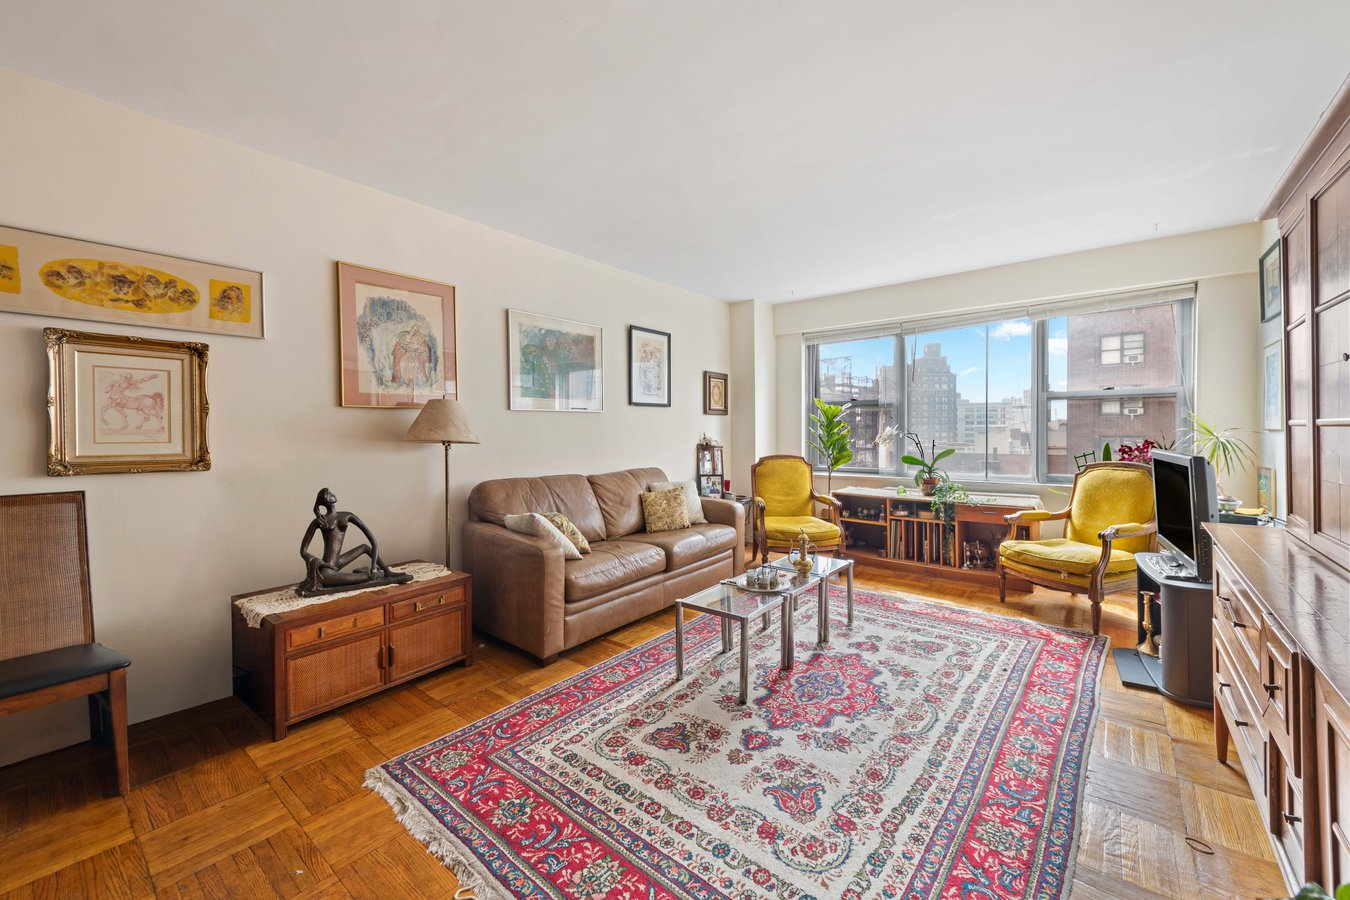 Apartment for sale at 175 West 13th Street, Apt 9F